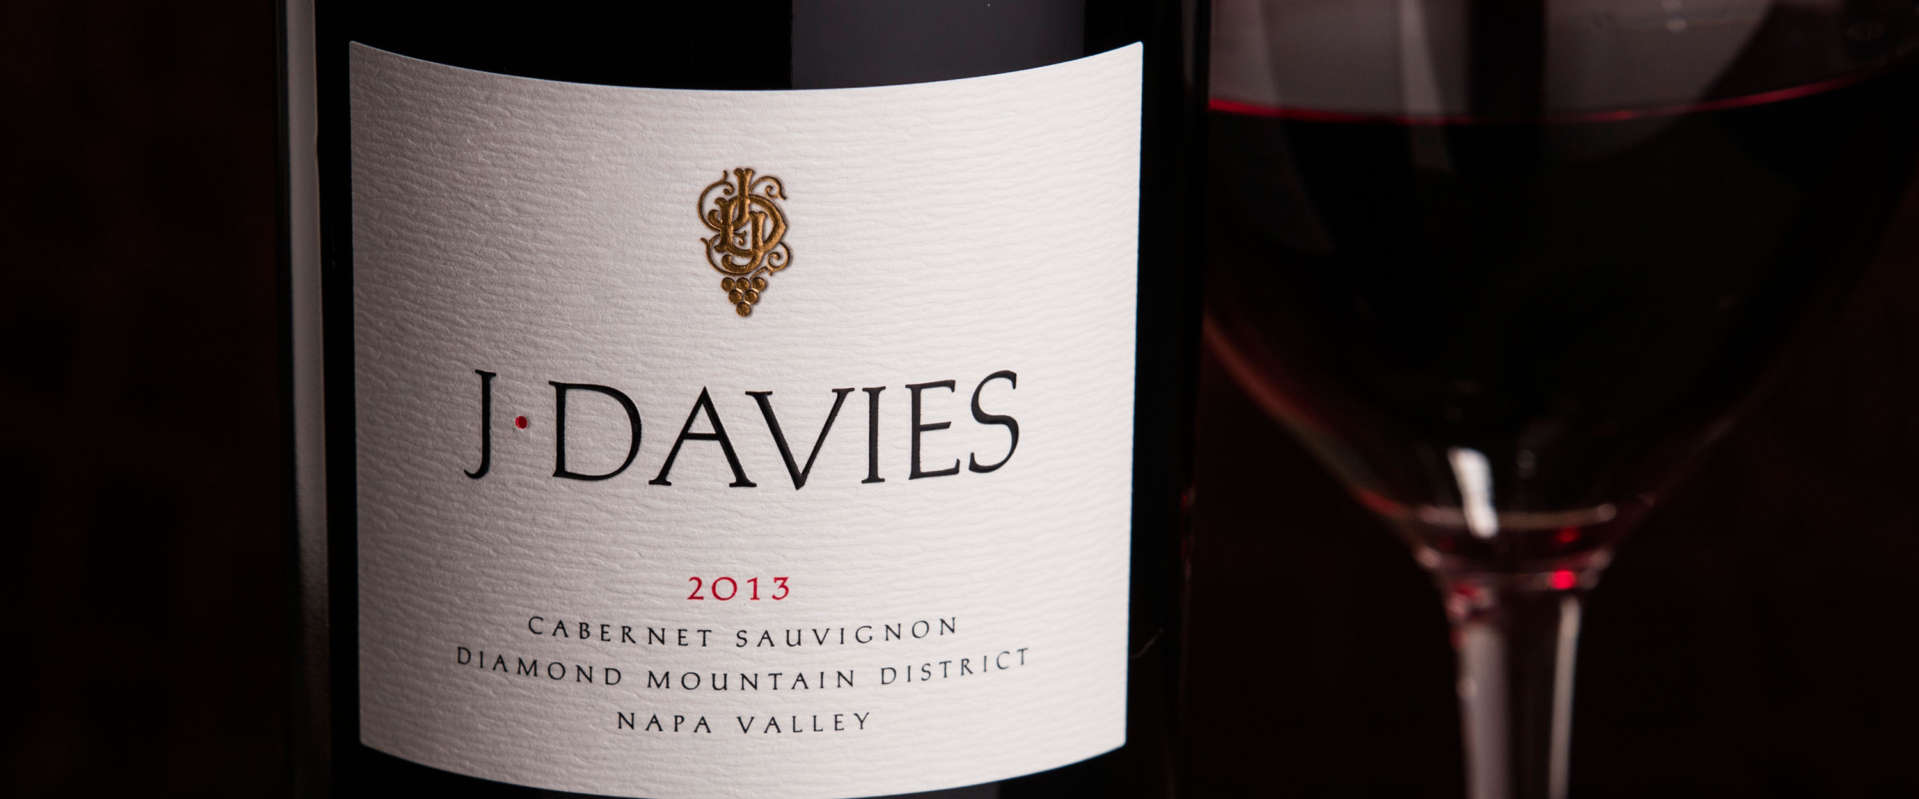 J. Davies 2013 Cabernet Sauvignon, Diamond Mountain District, Napa Valley